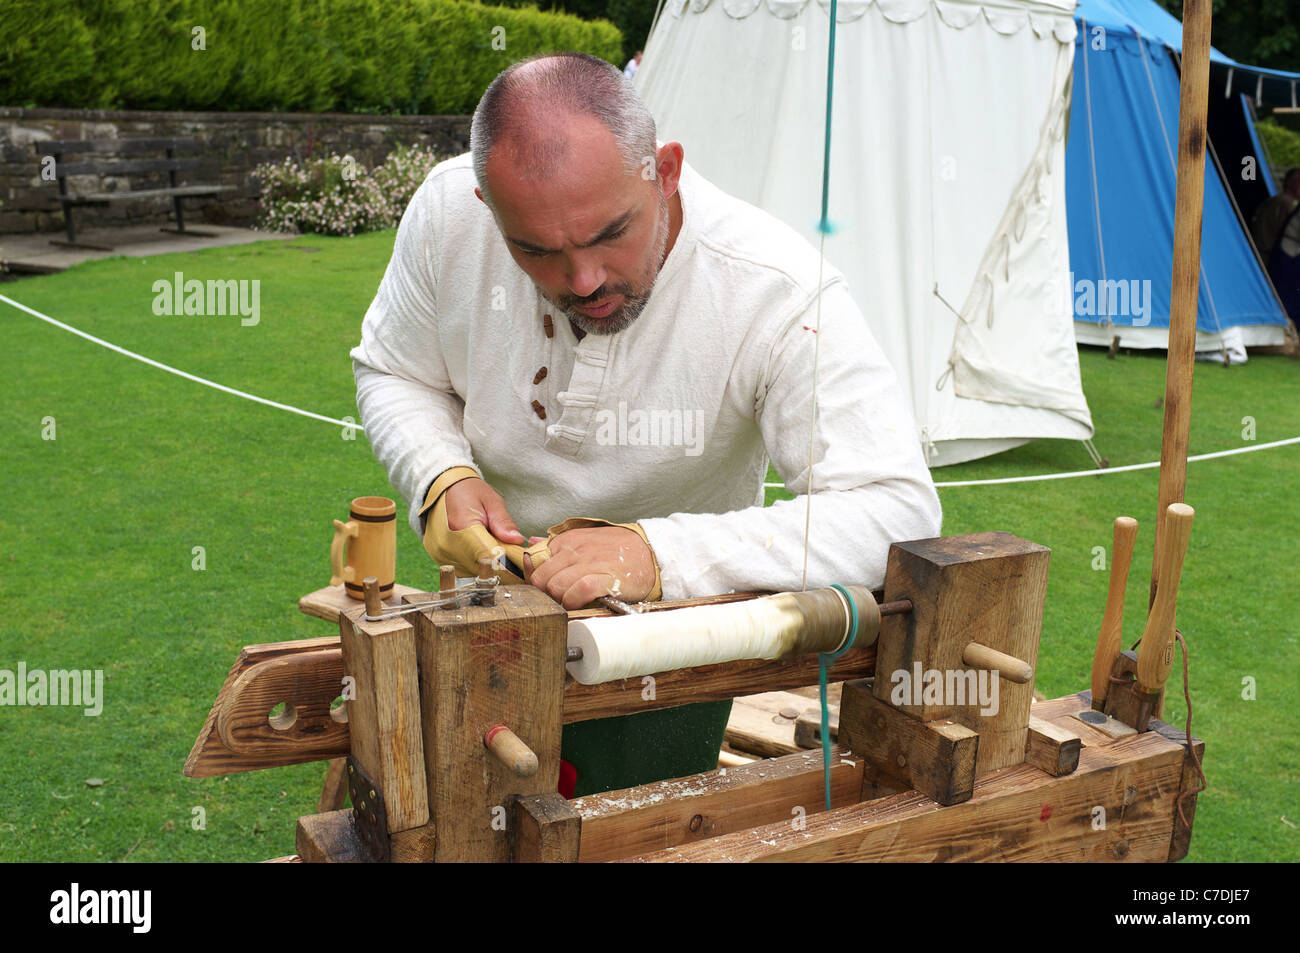 Man demonstrating the traditional method of carving wood using a foot operated lathe, Kilmarnock, Ayrshire, Scotland, - Stock Image